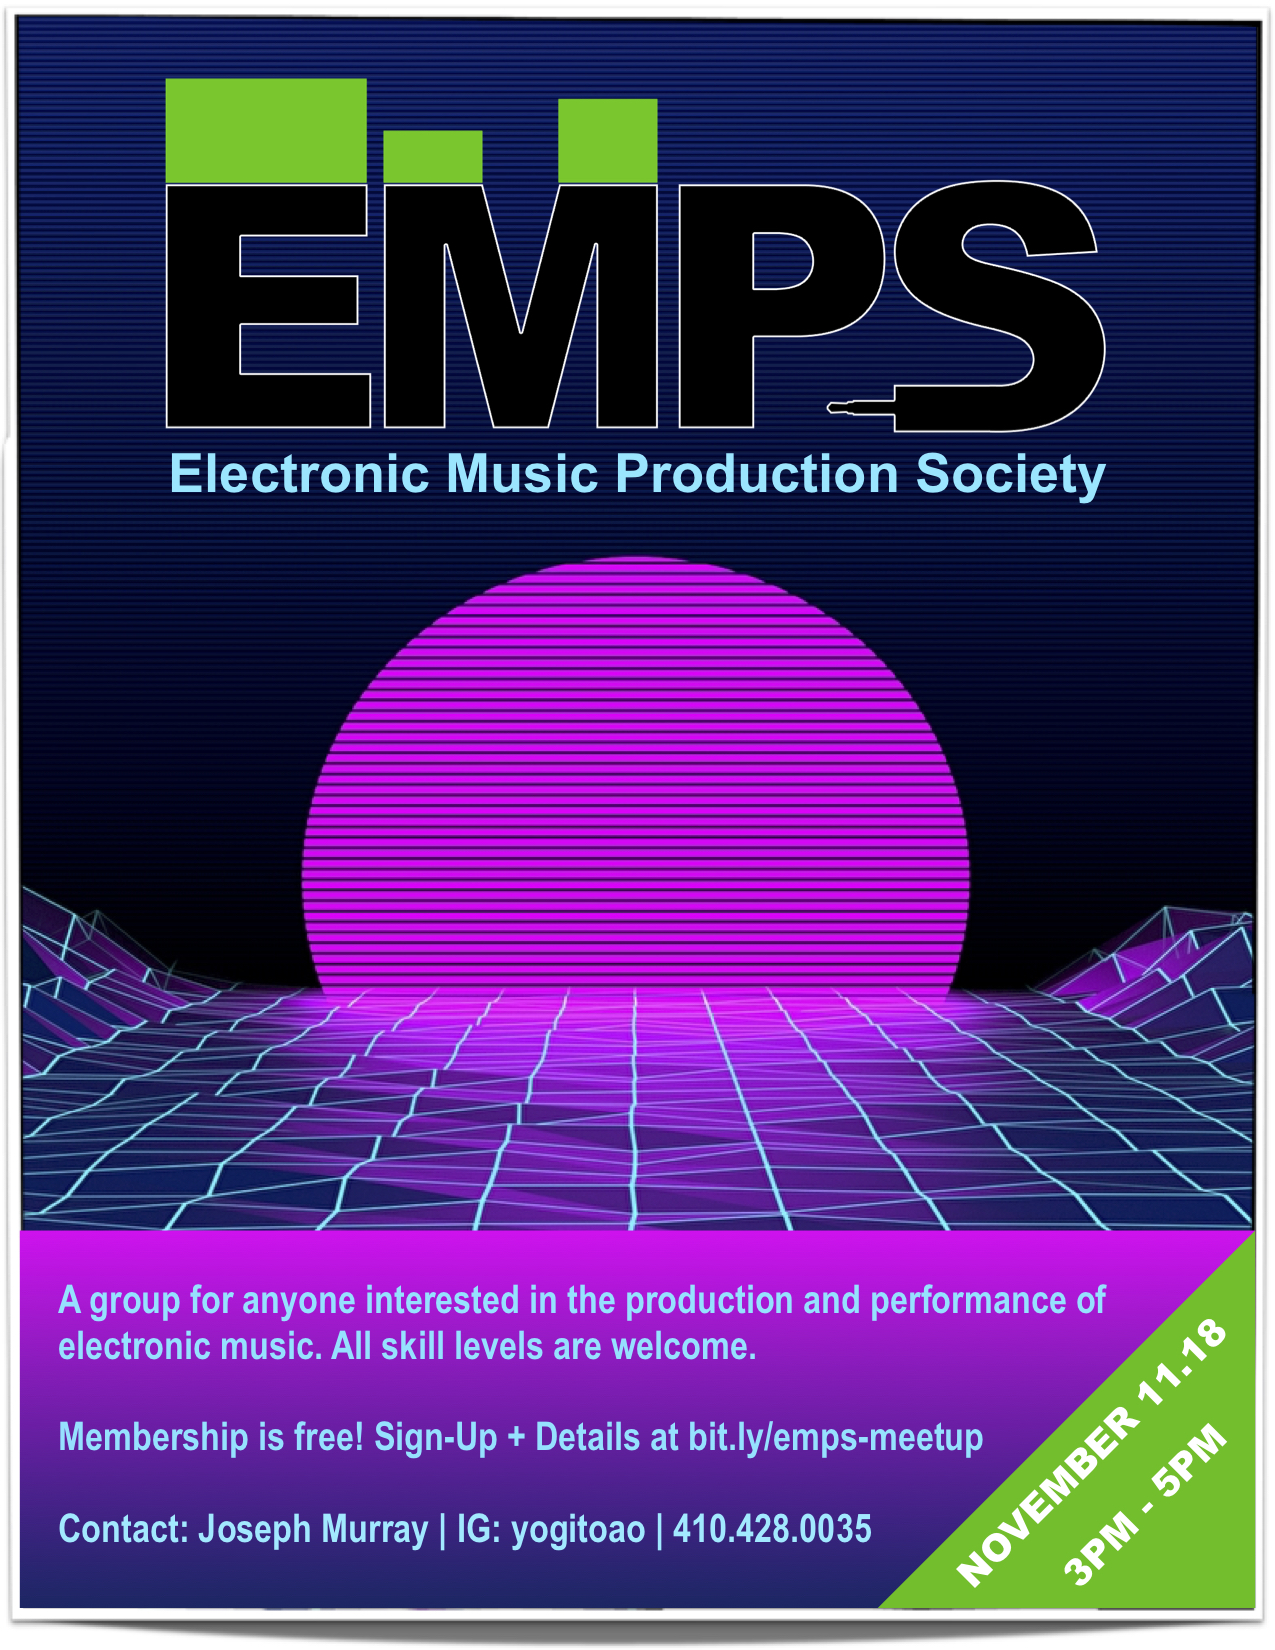 Electronic Music Production Society Meetup